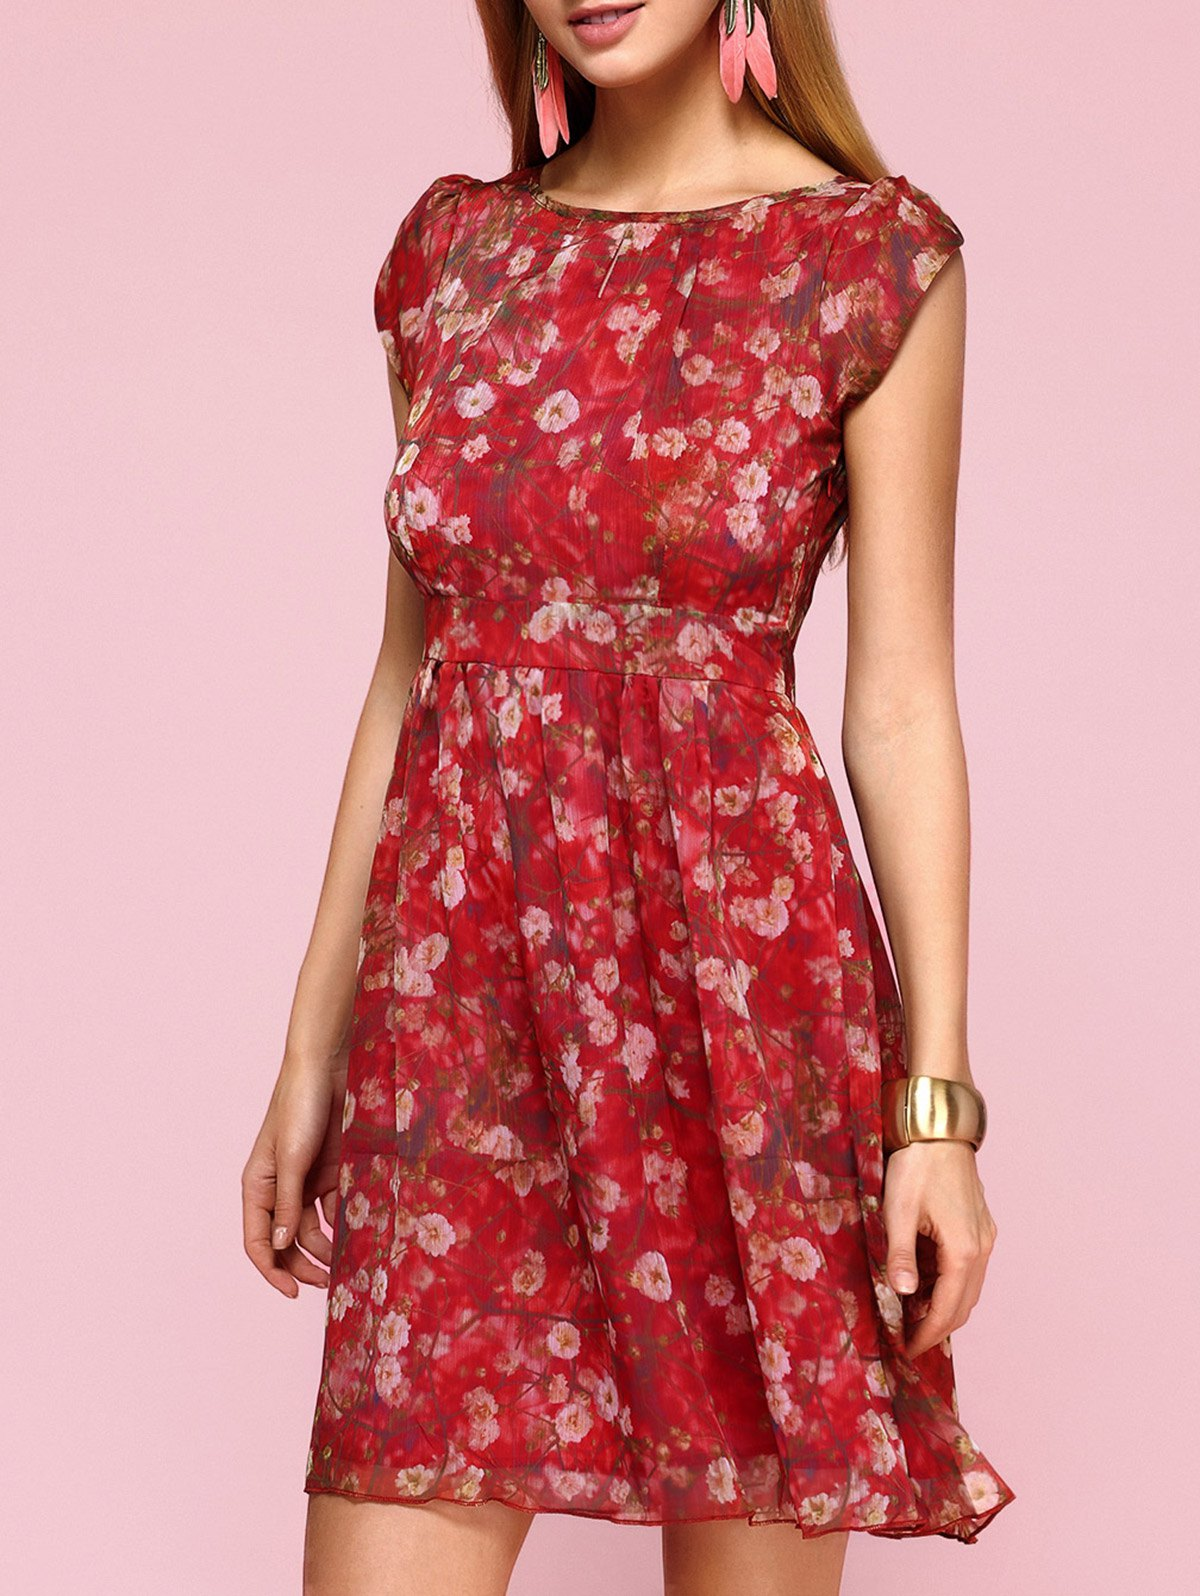 Elegant Jewel Neck Tulip Sleeve Floral Dress For Women - RED XL